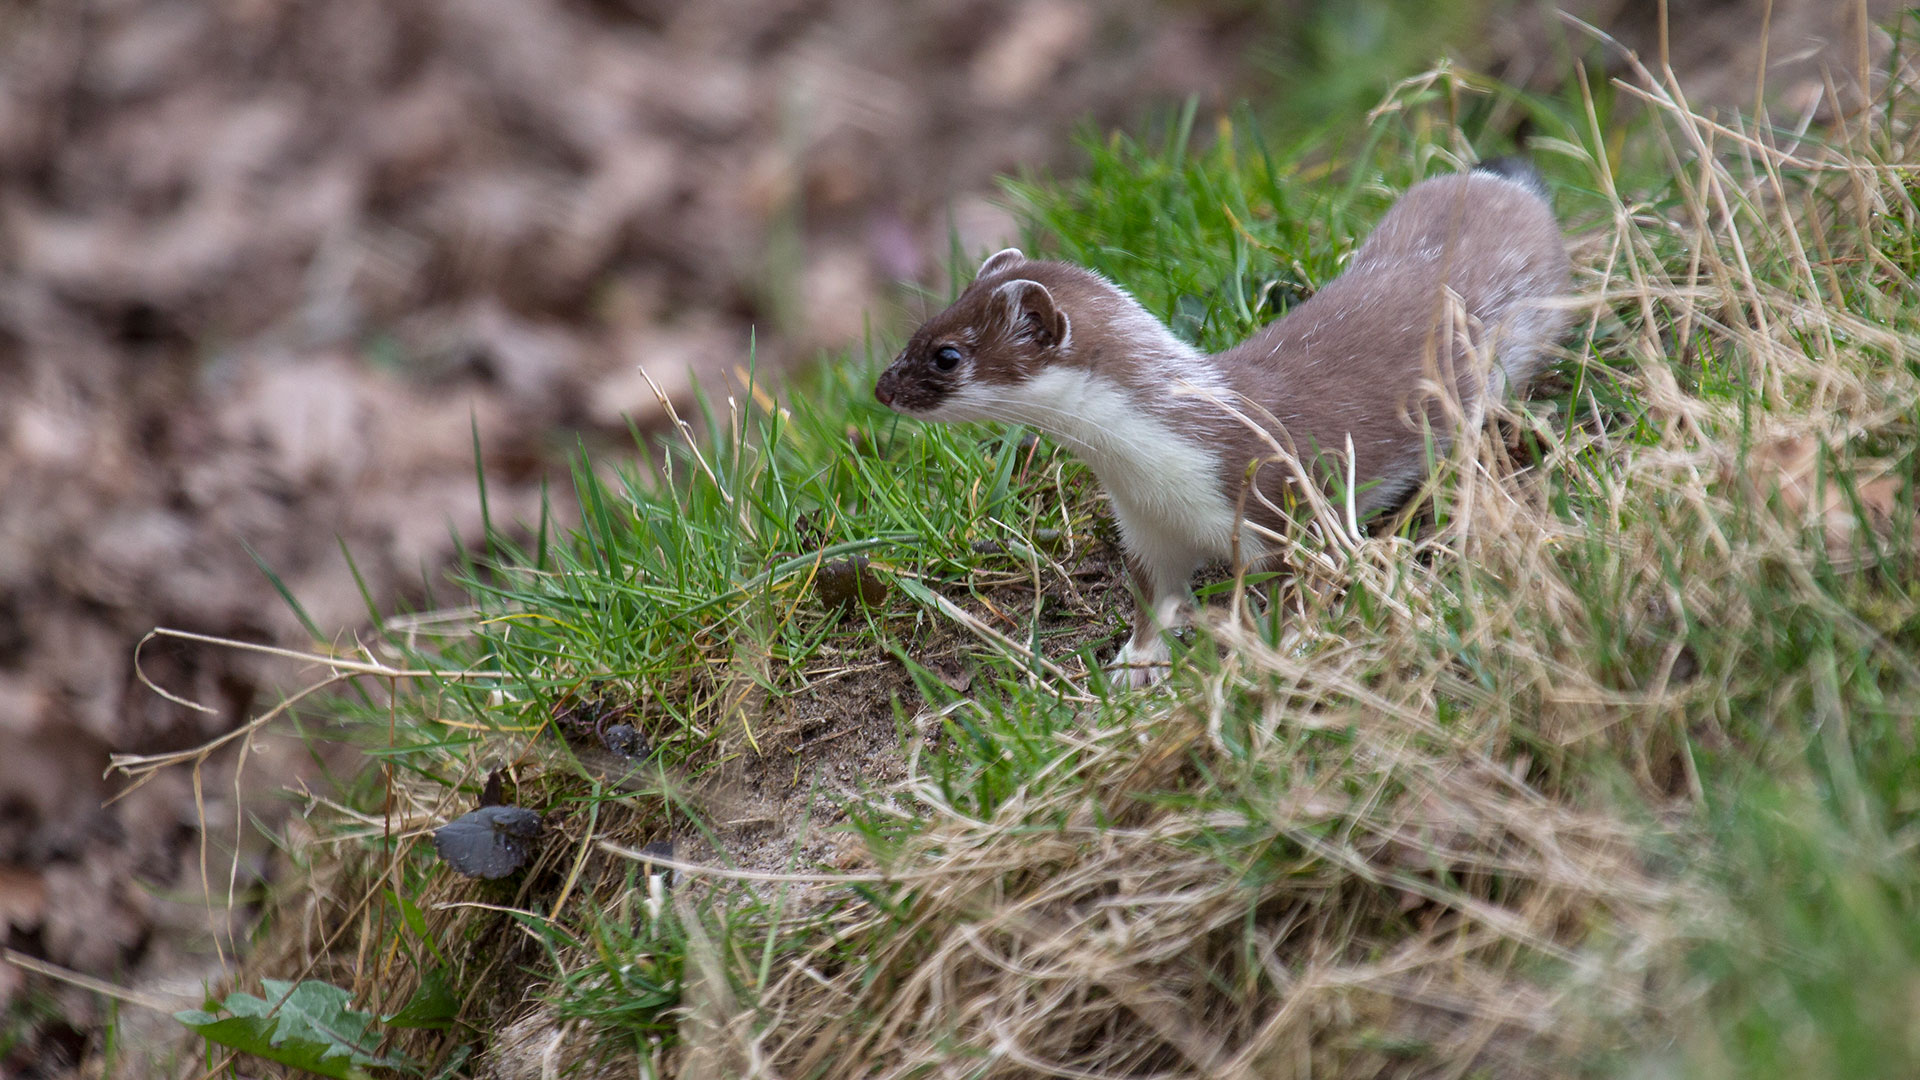 Hermelin / Mustela erminea / Stoat